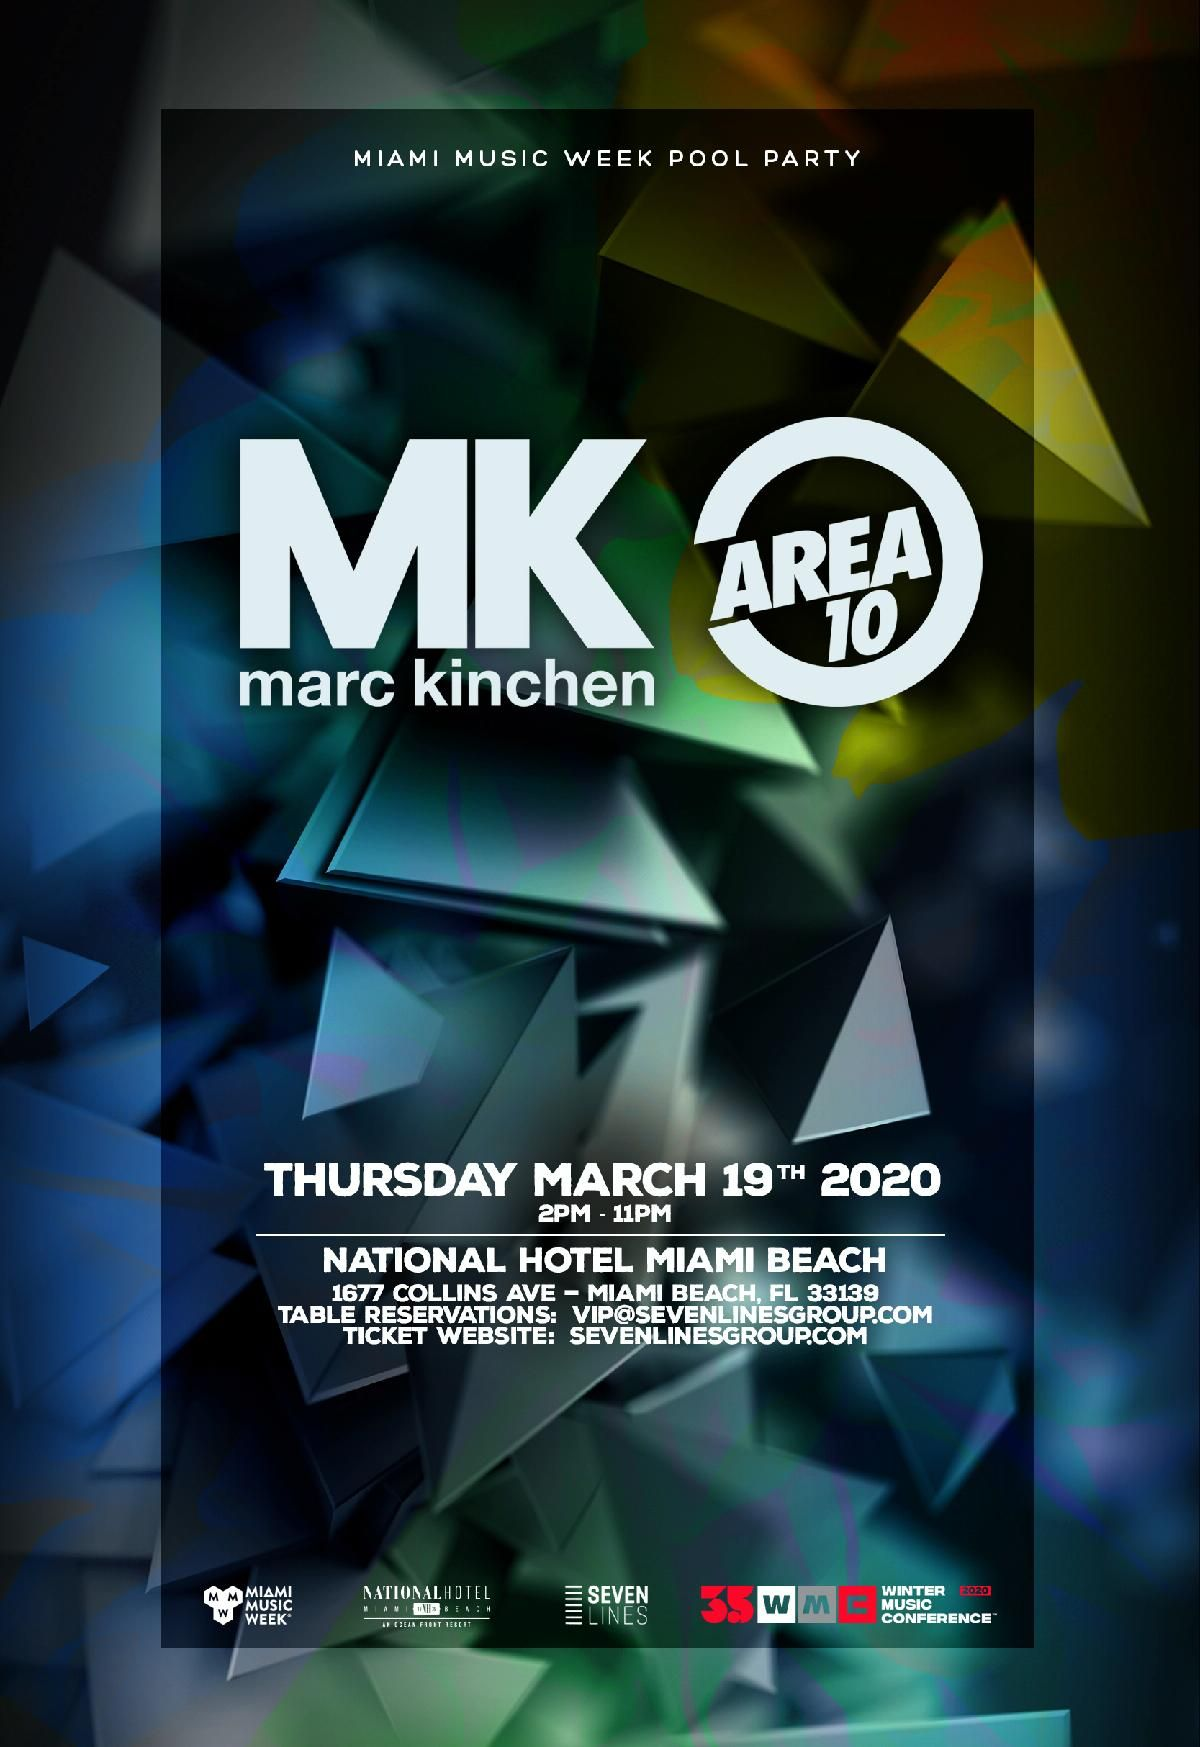 MK Area 10 Pool Party MMW Discount Promo Code